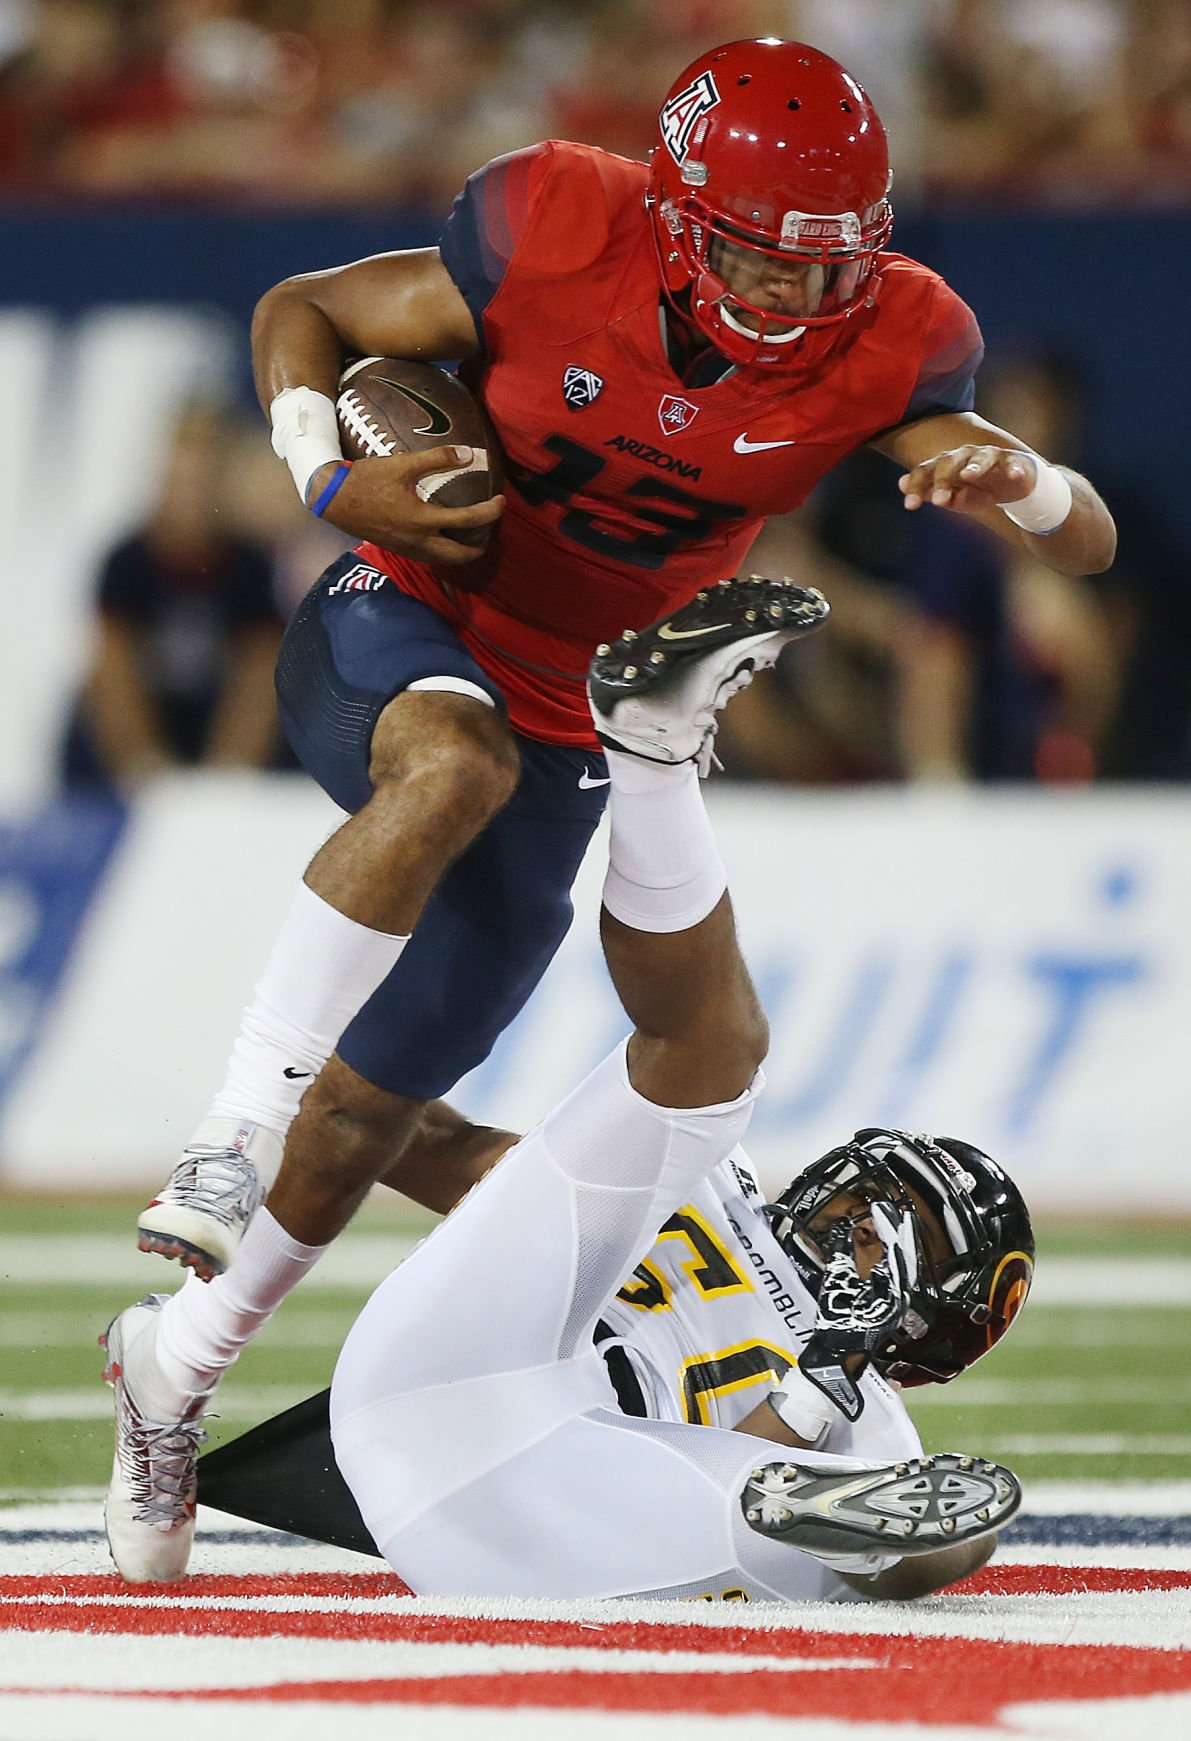 Grambling State vs. Arizona